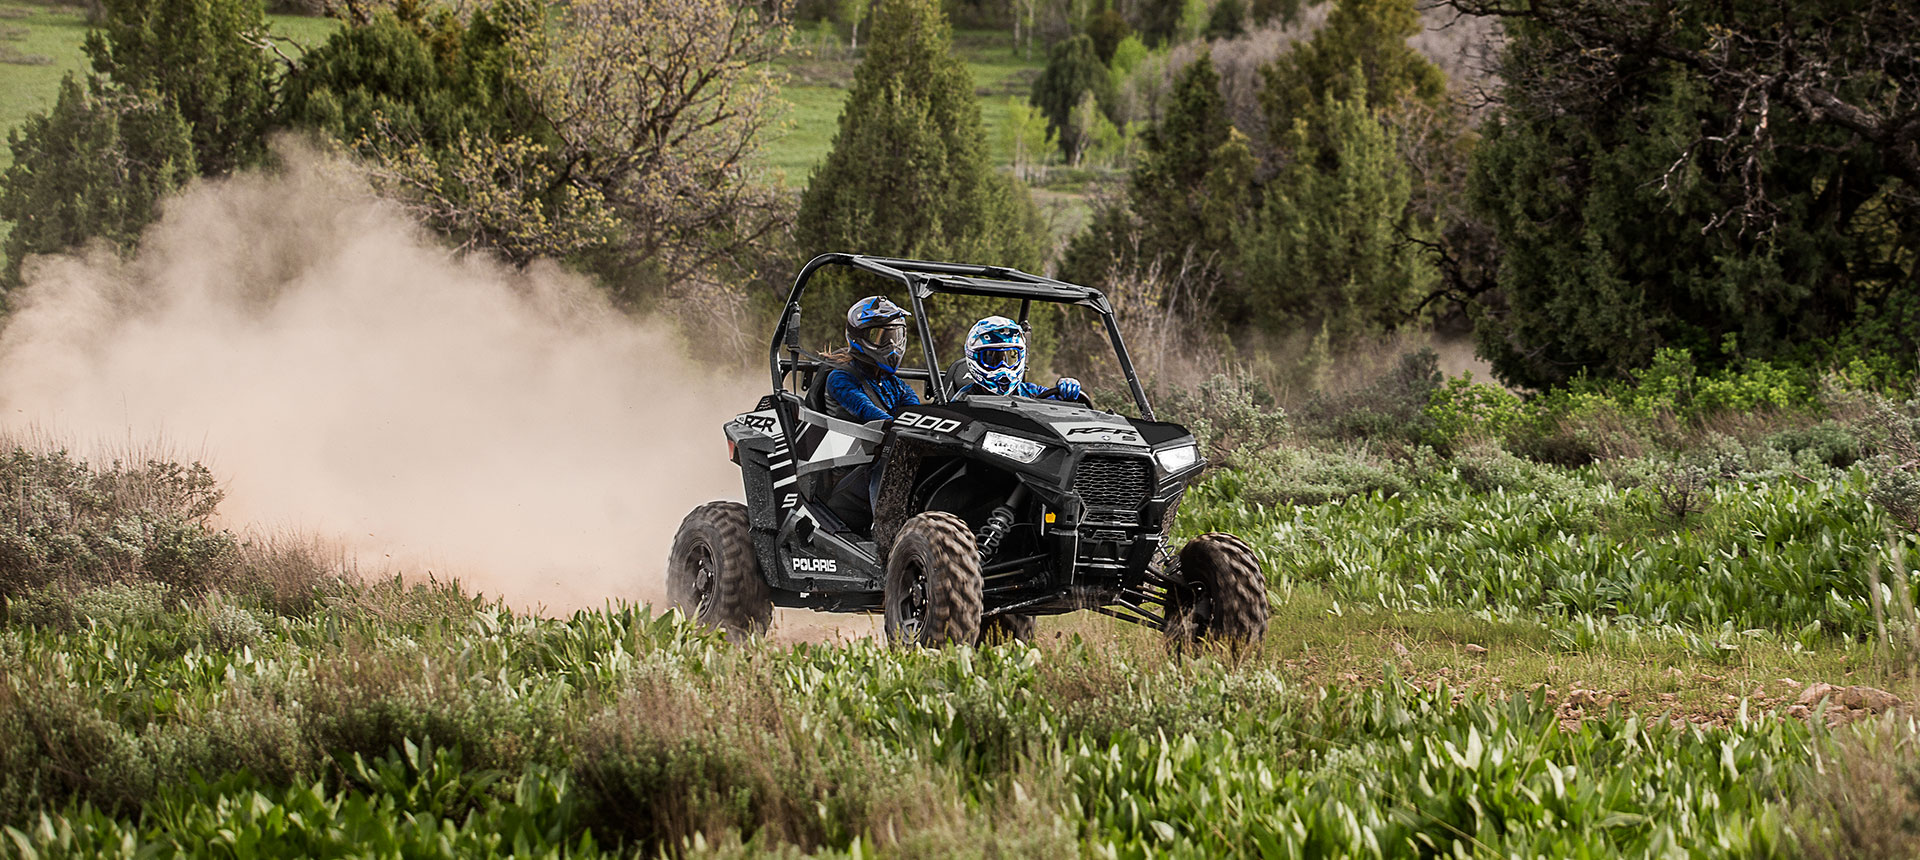 2019 Polaris RZR S 900 in Stillwater, Oklahoma